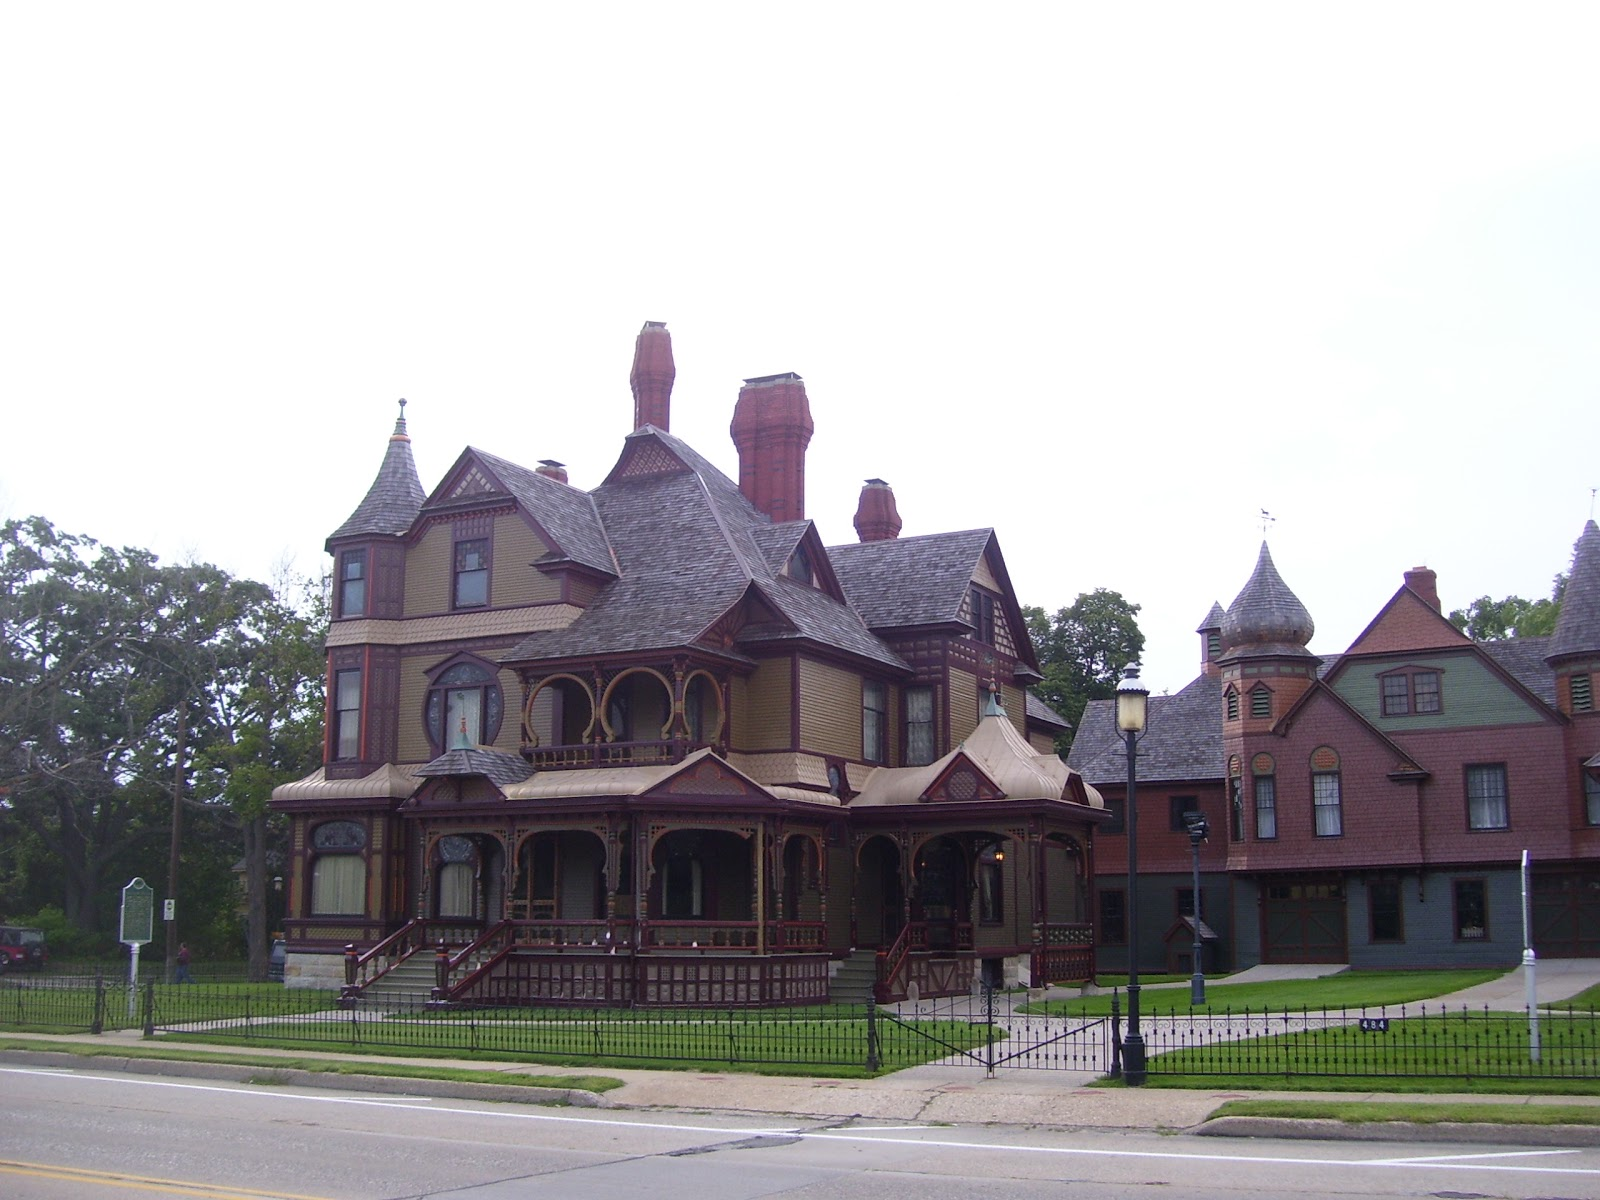 The hackley and hume historic homes muskegon michigan for House builders in michigan